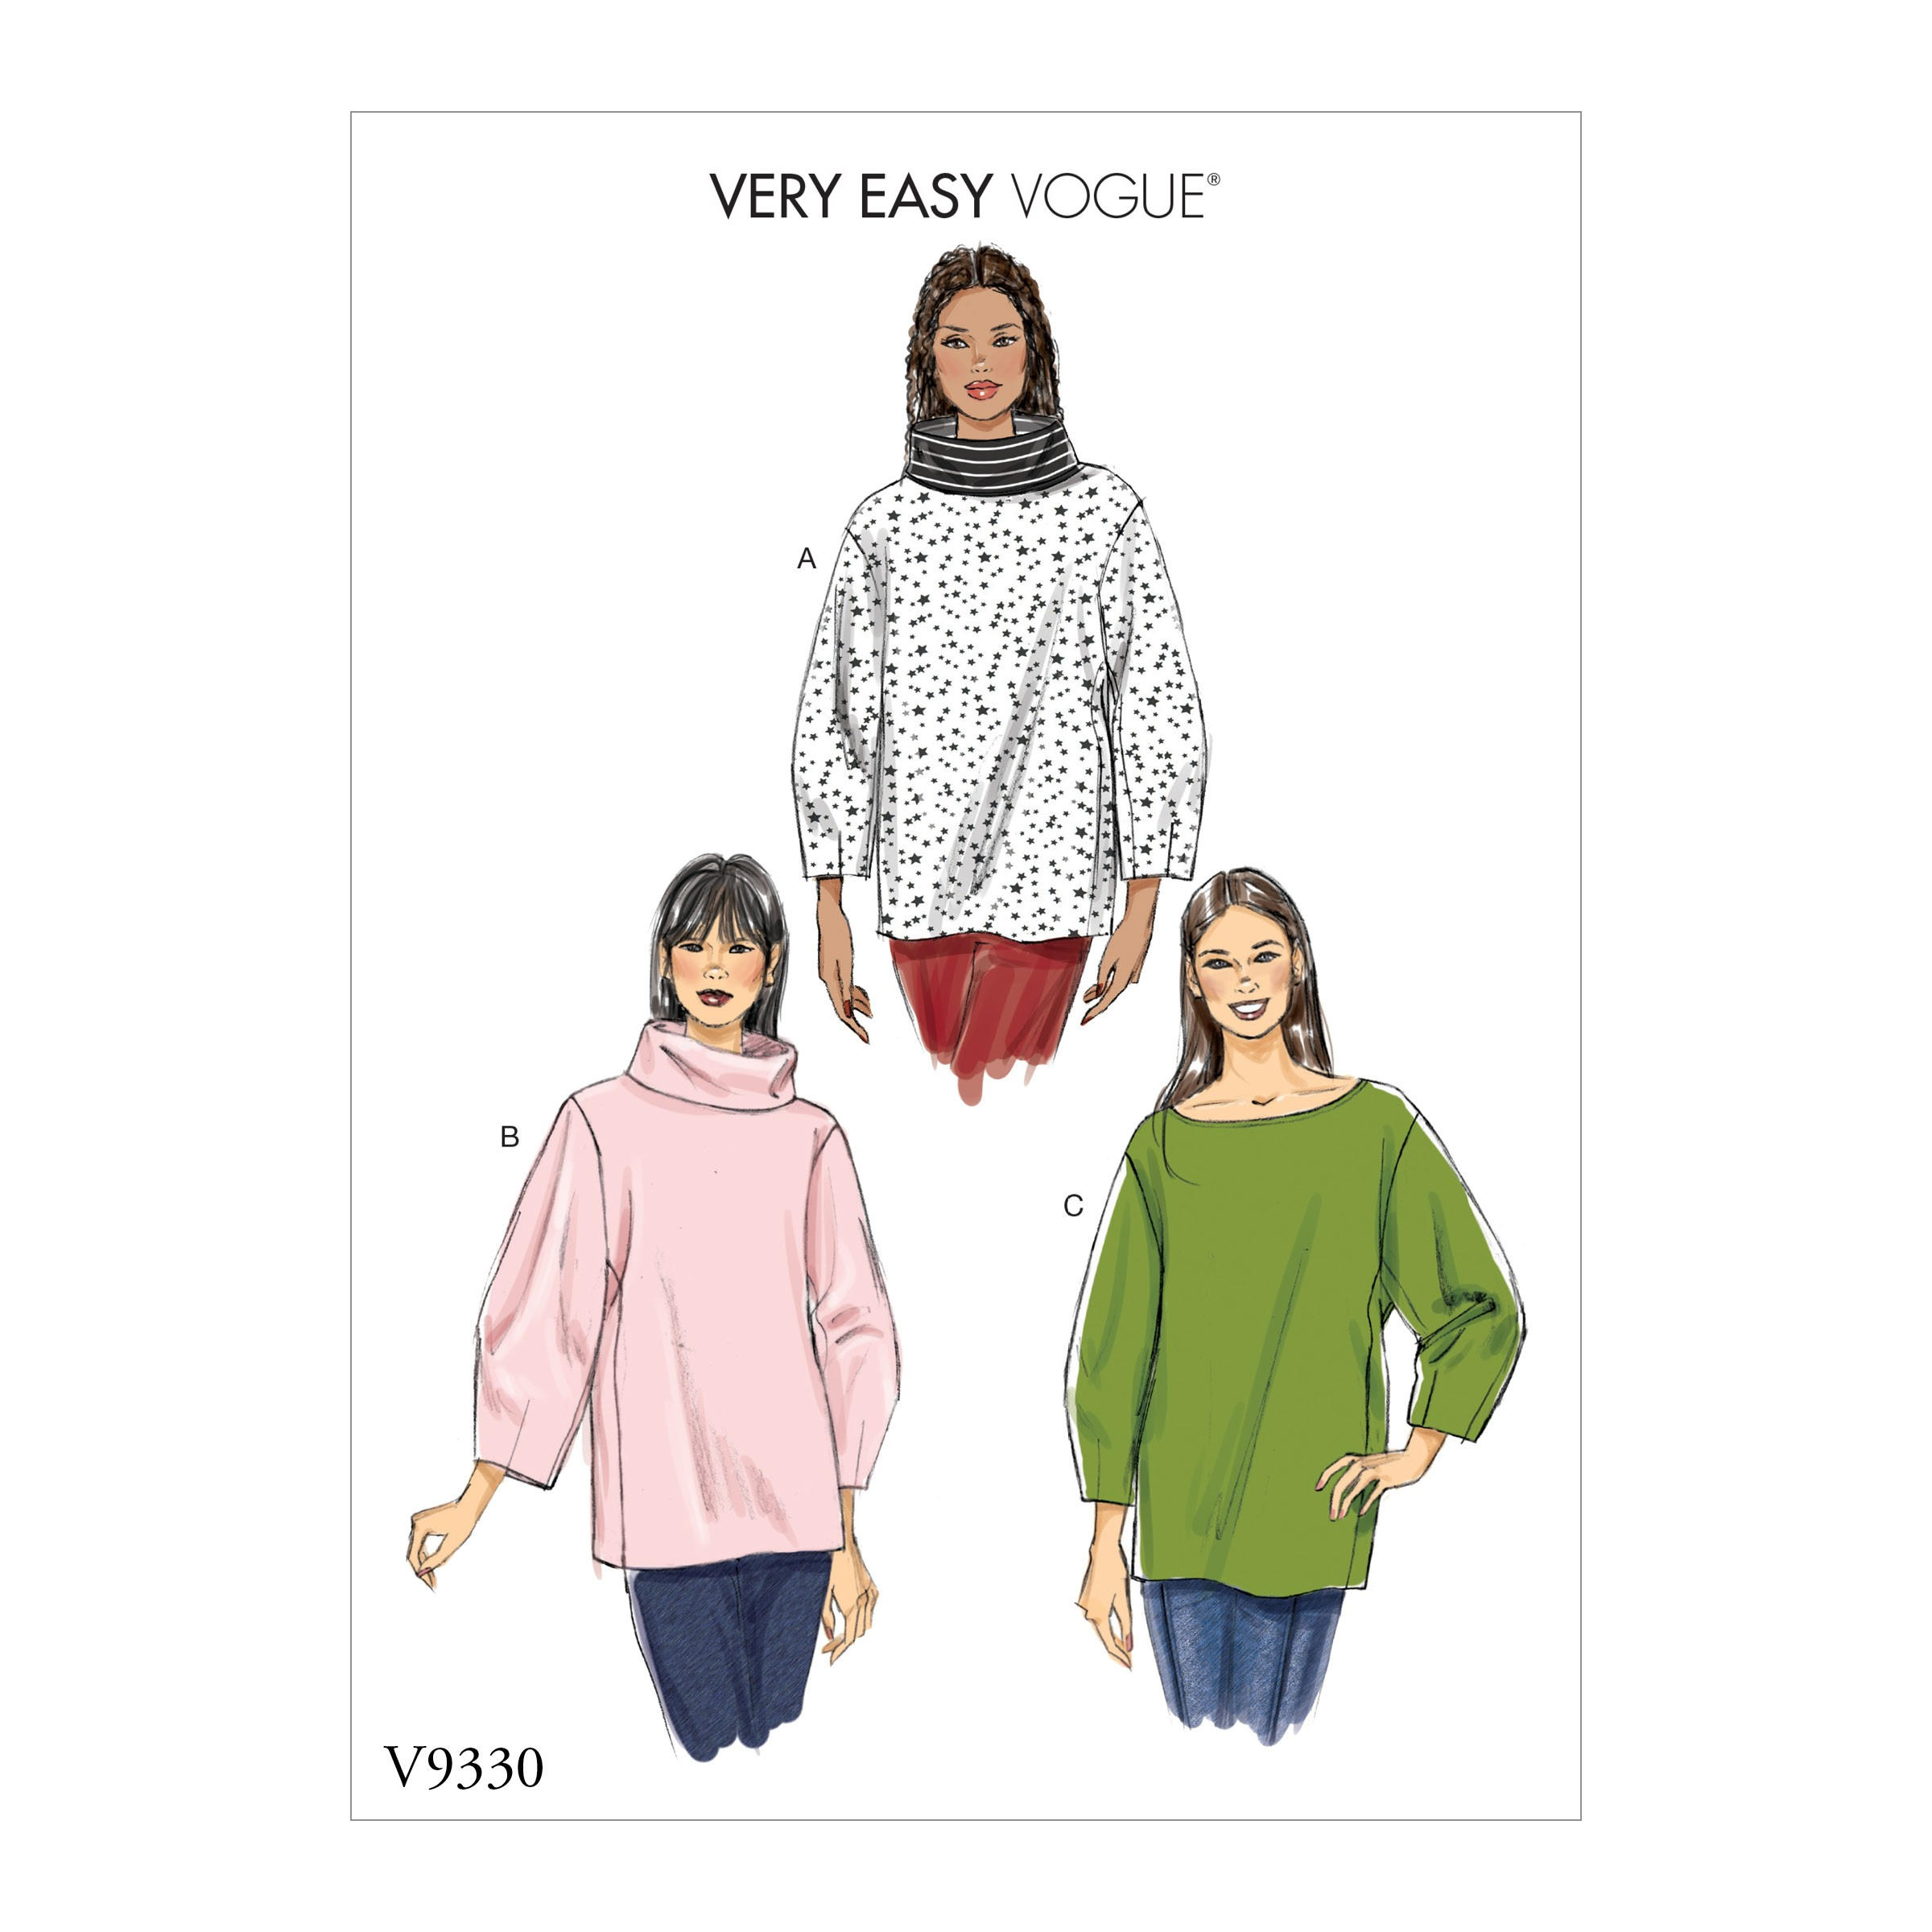 Vogue Sewing Pattern V9330 Women's Loose Fitting Oversized Top